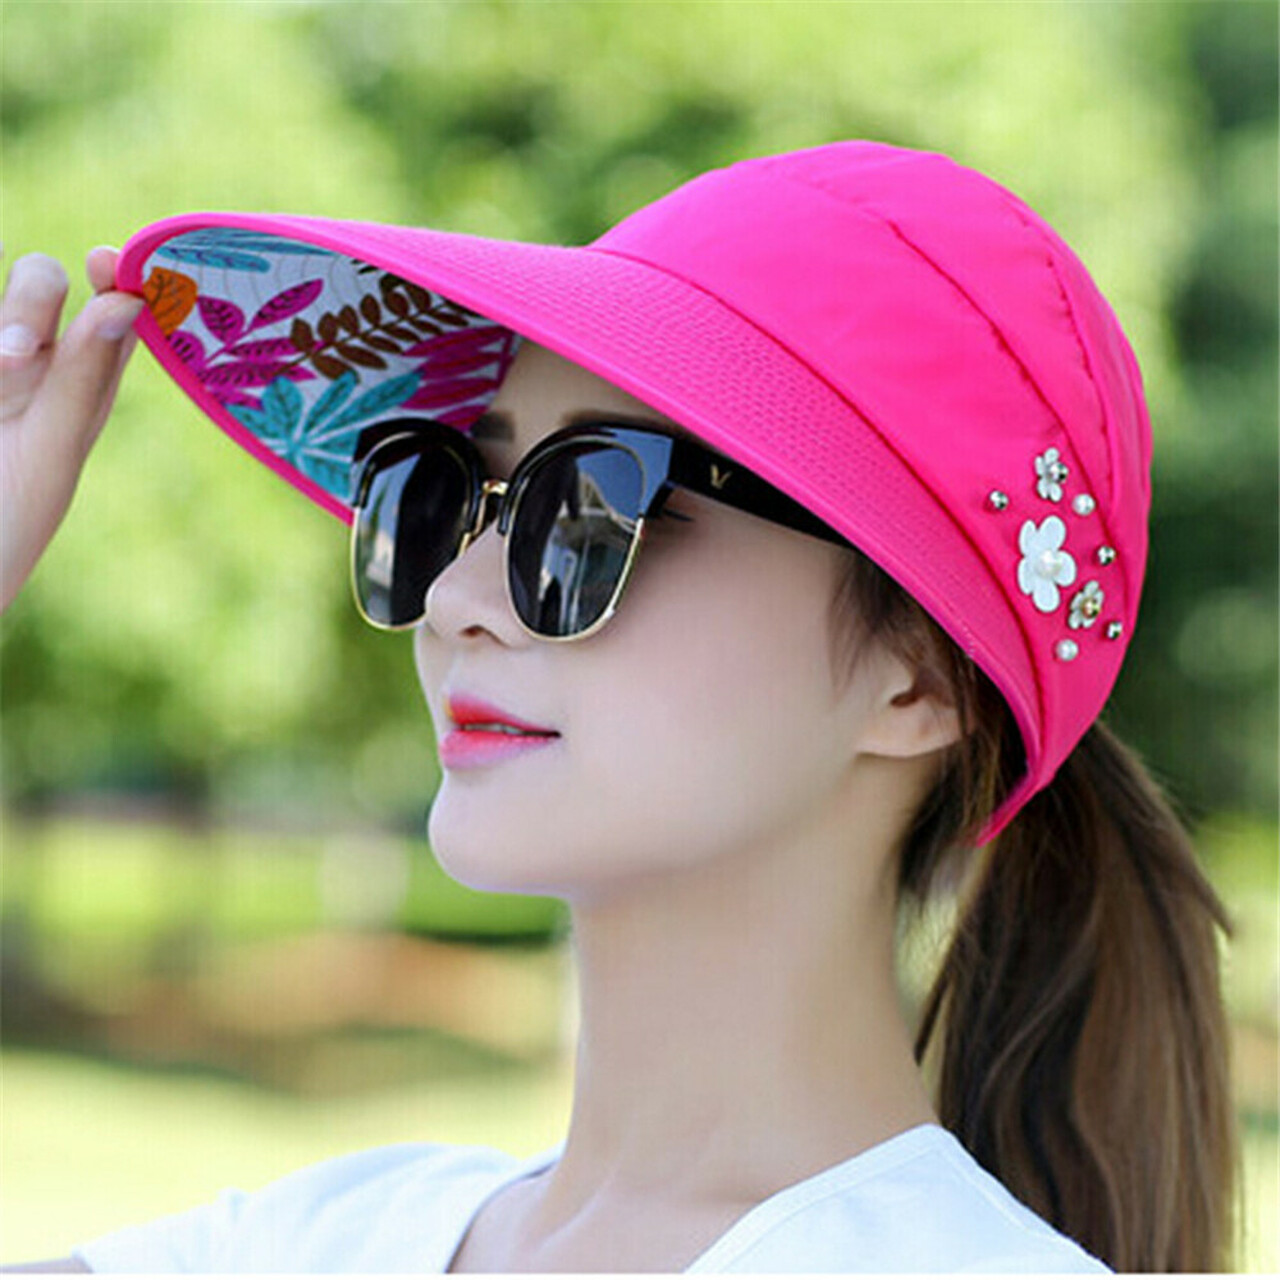 5efdaf82a49e7 ... Sun Hats for Women Visors Hat Fishing Fisher Beach Hat UV Protection Cap  Black Casual Womens ...